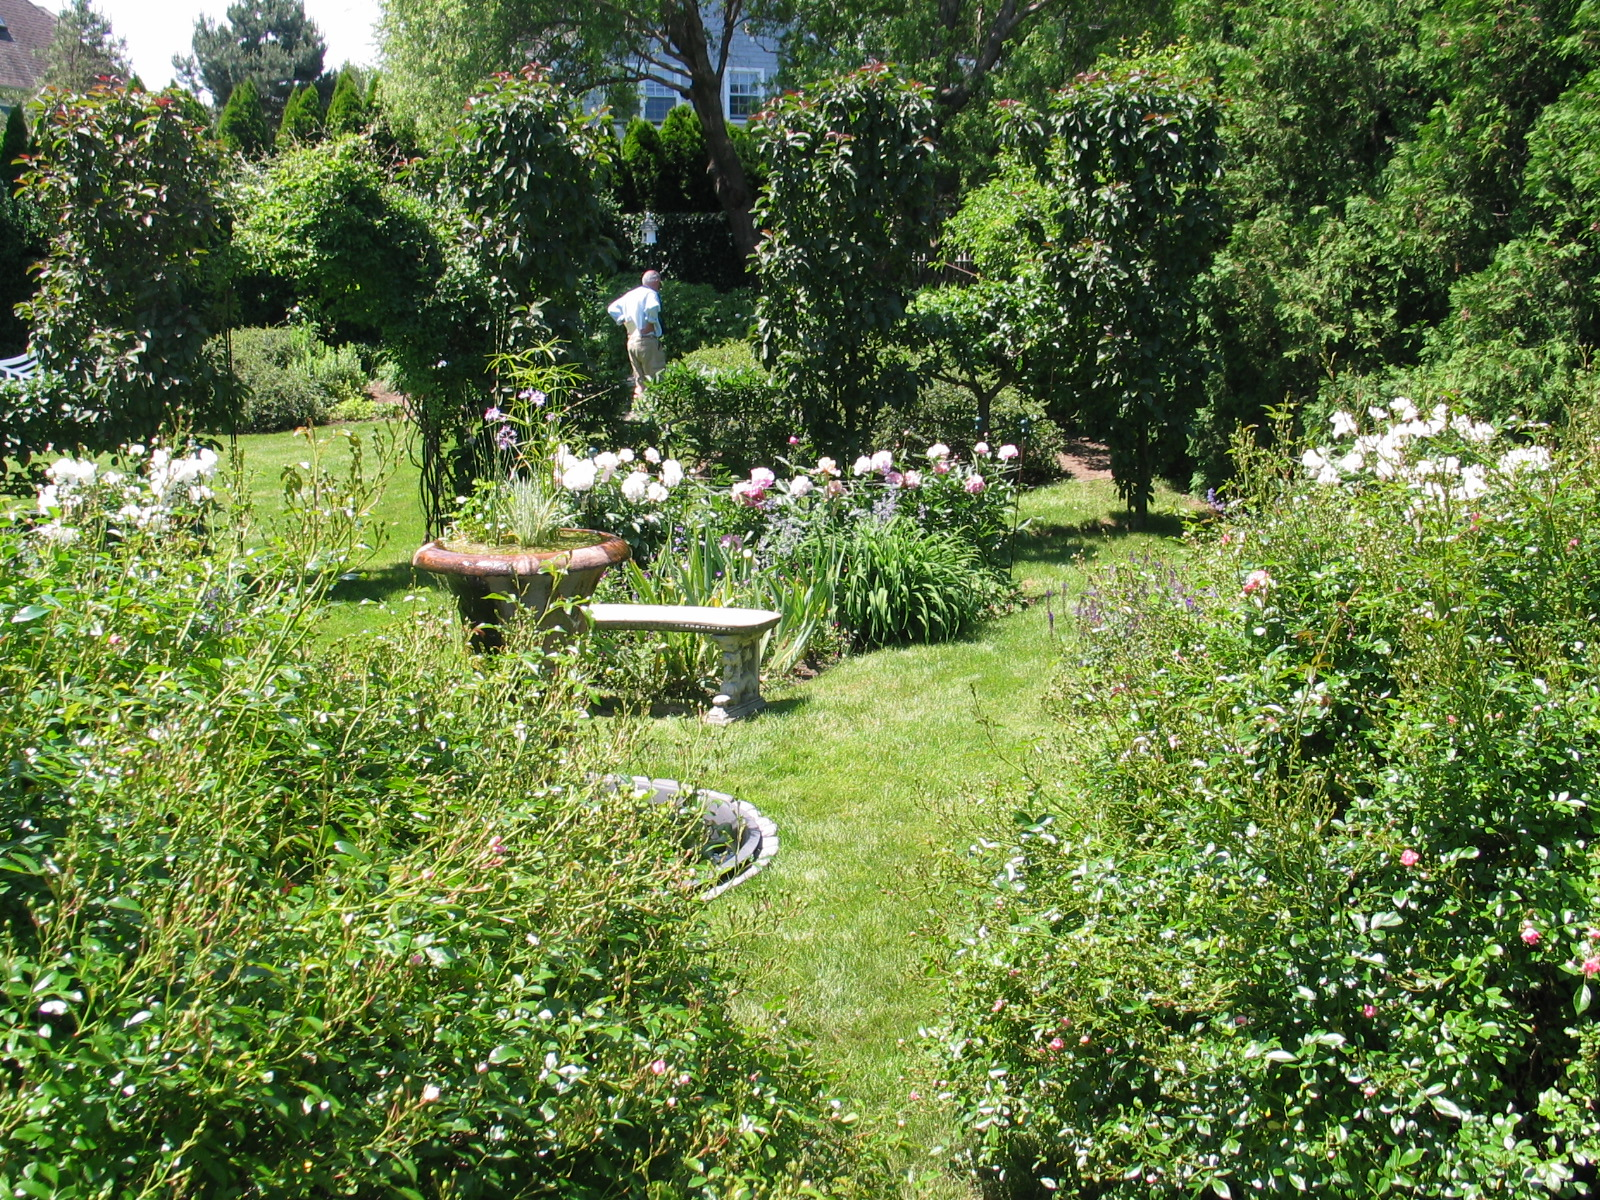 nineteenth century american writer considered english garden